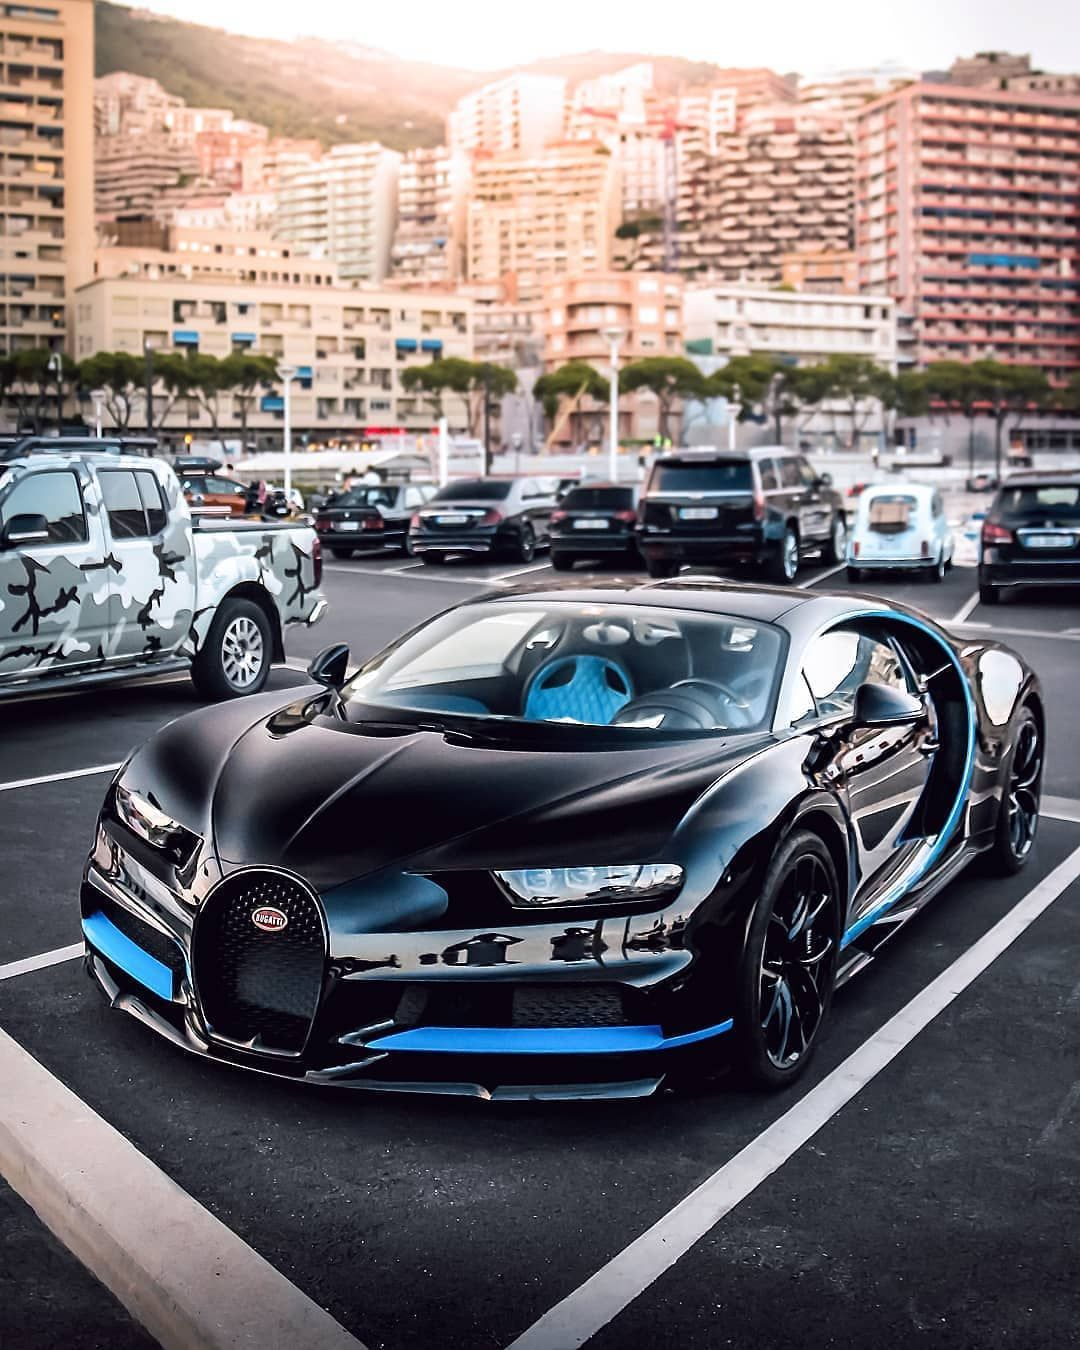 745 Best All Of Bugatti Images On Pinterest: Pin On Your Pinterest Likes